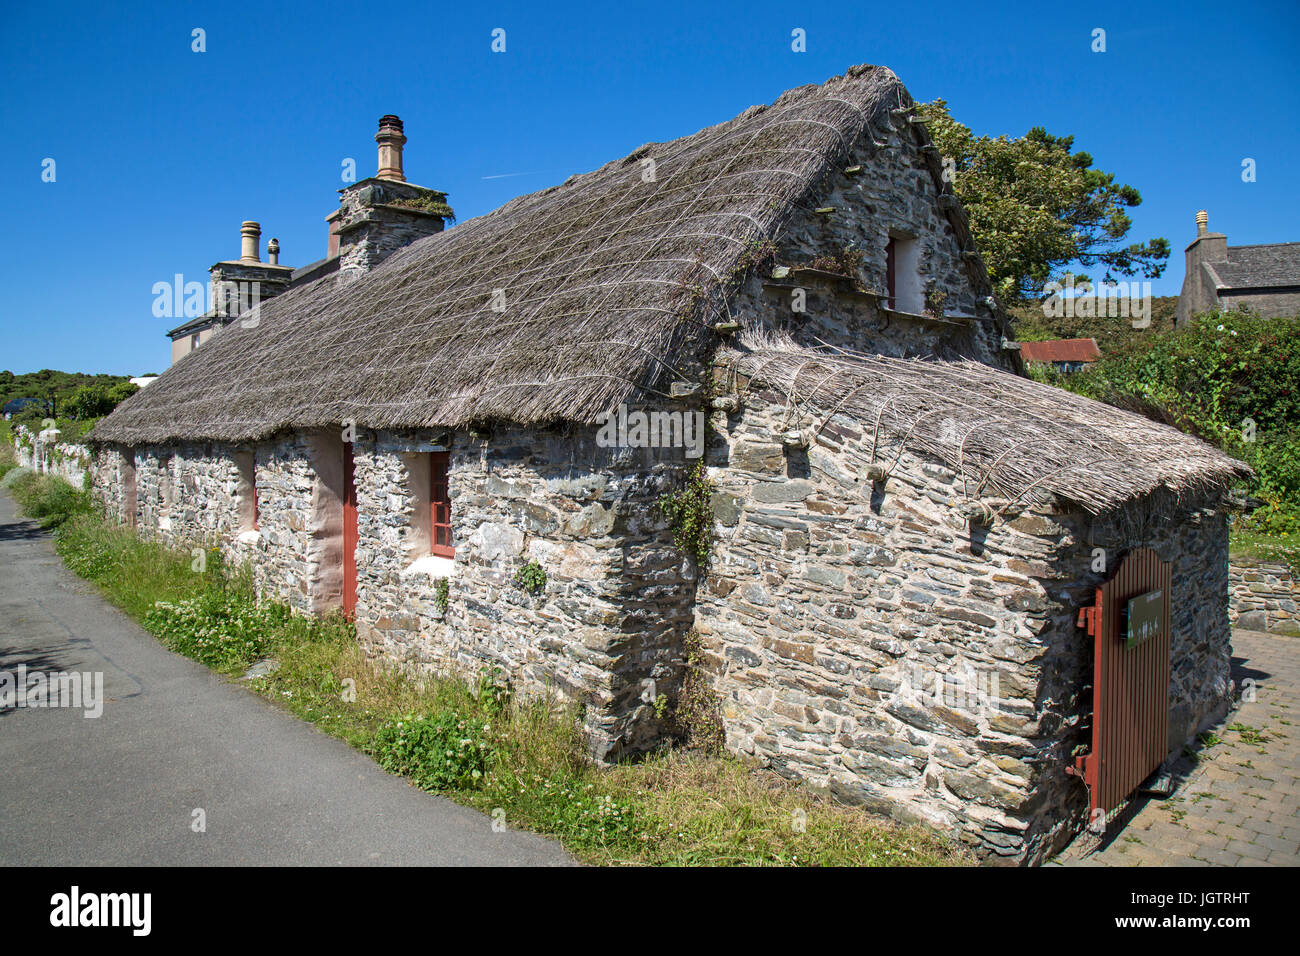 Thatched cottage in the preserved village of Cregneash on The Isle of Man. - Stock Image